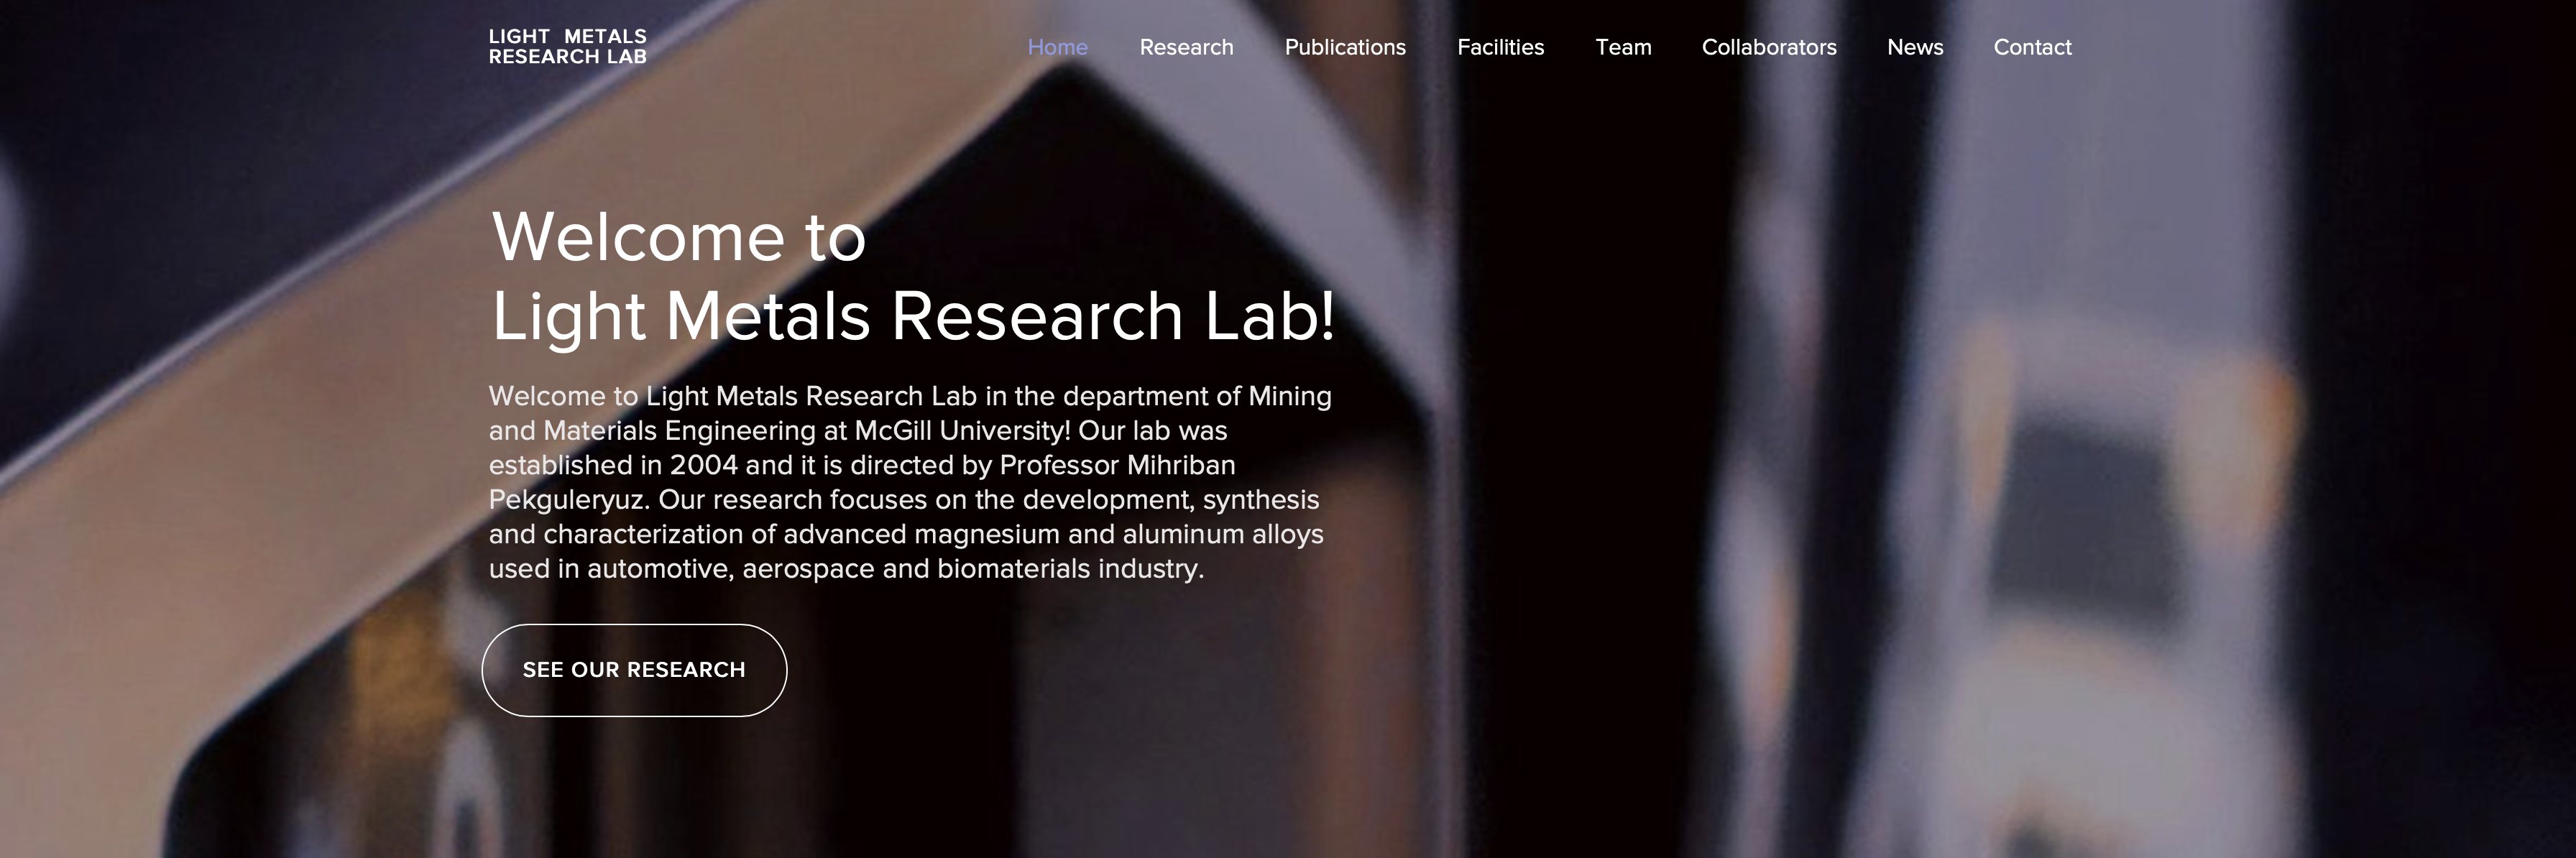 Light Metals Research Lab